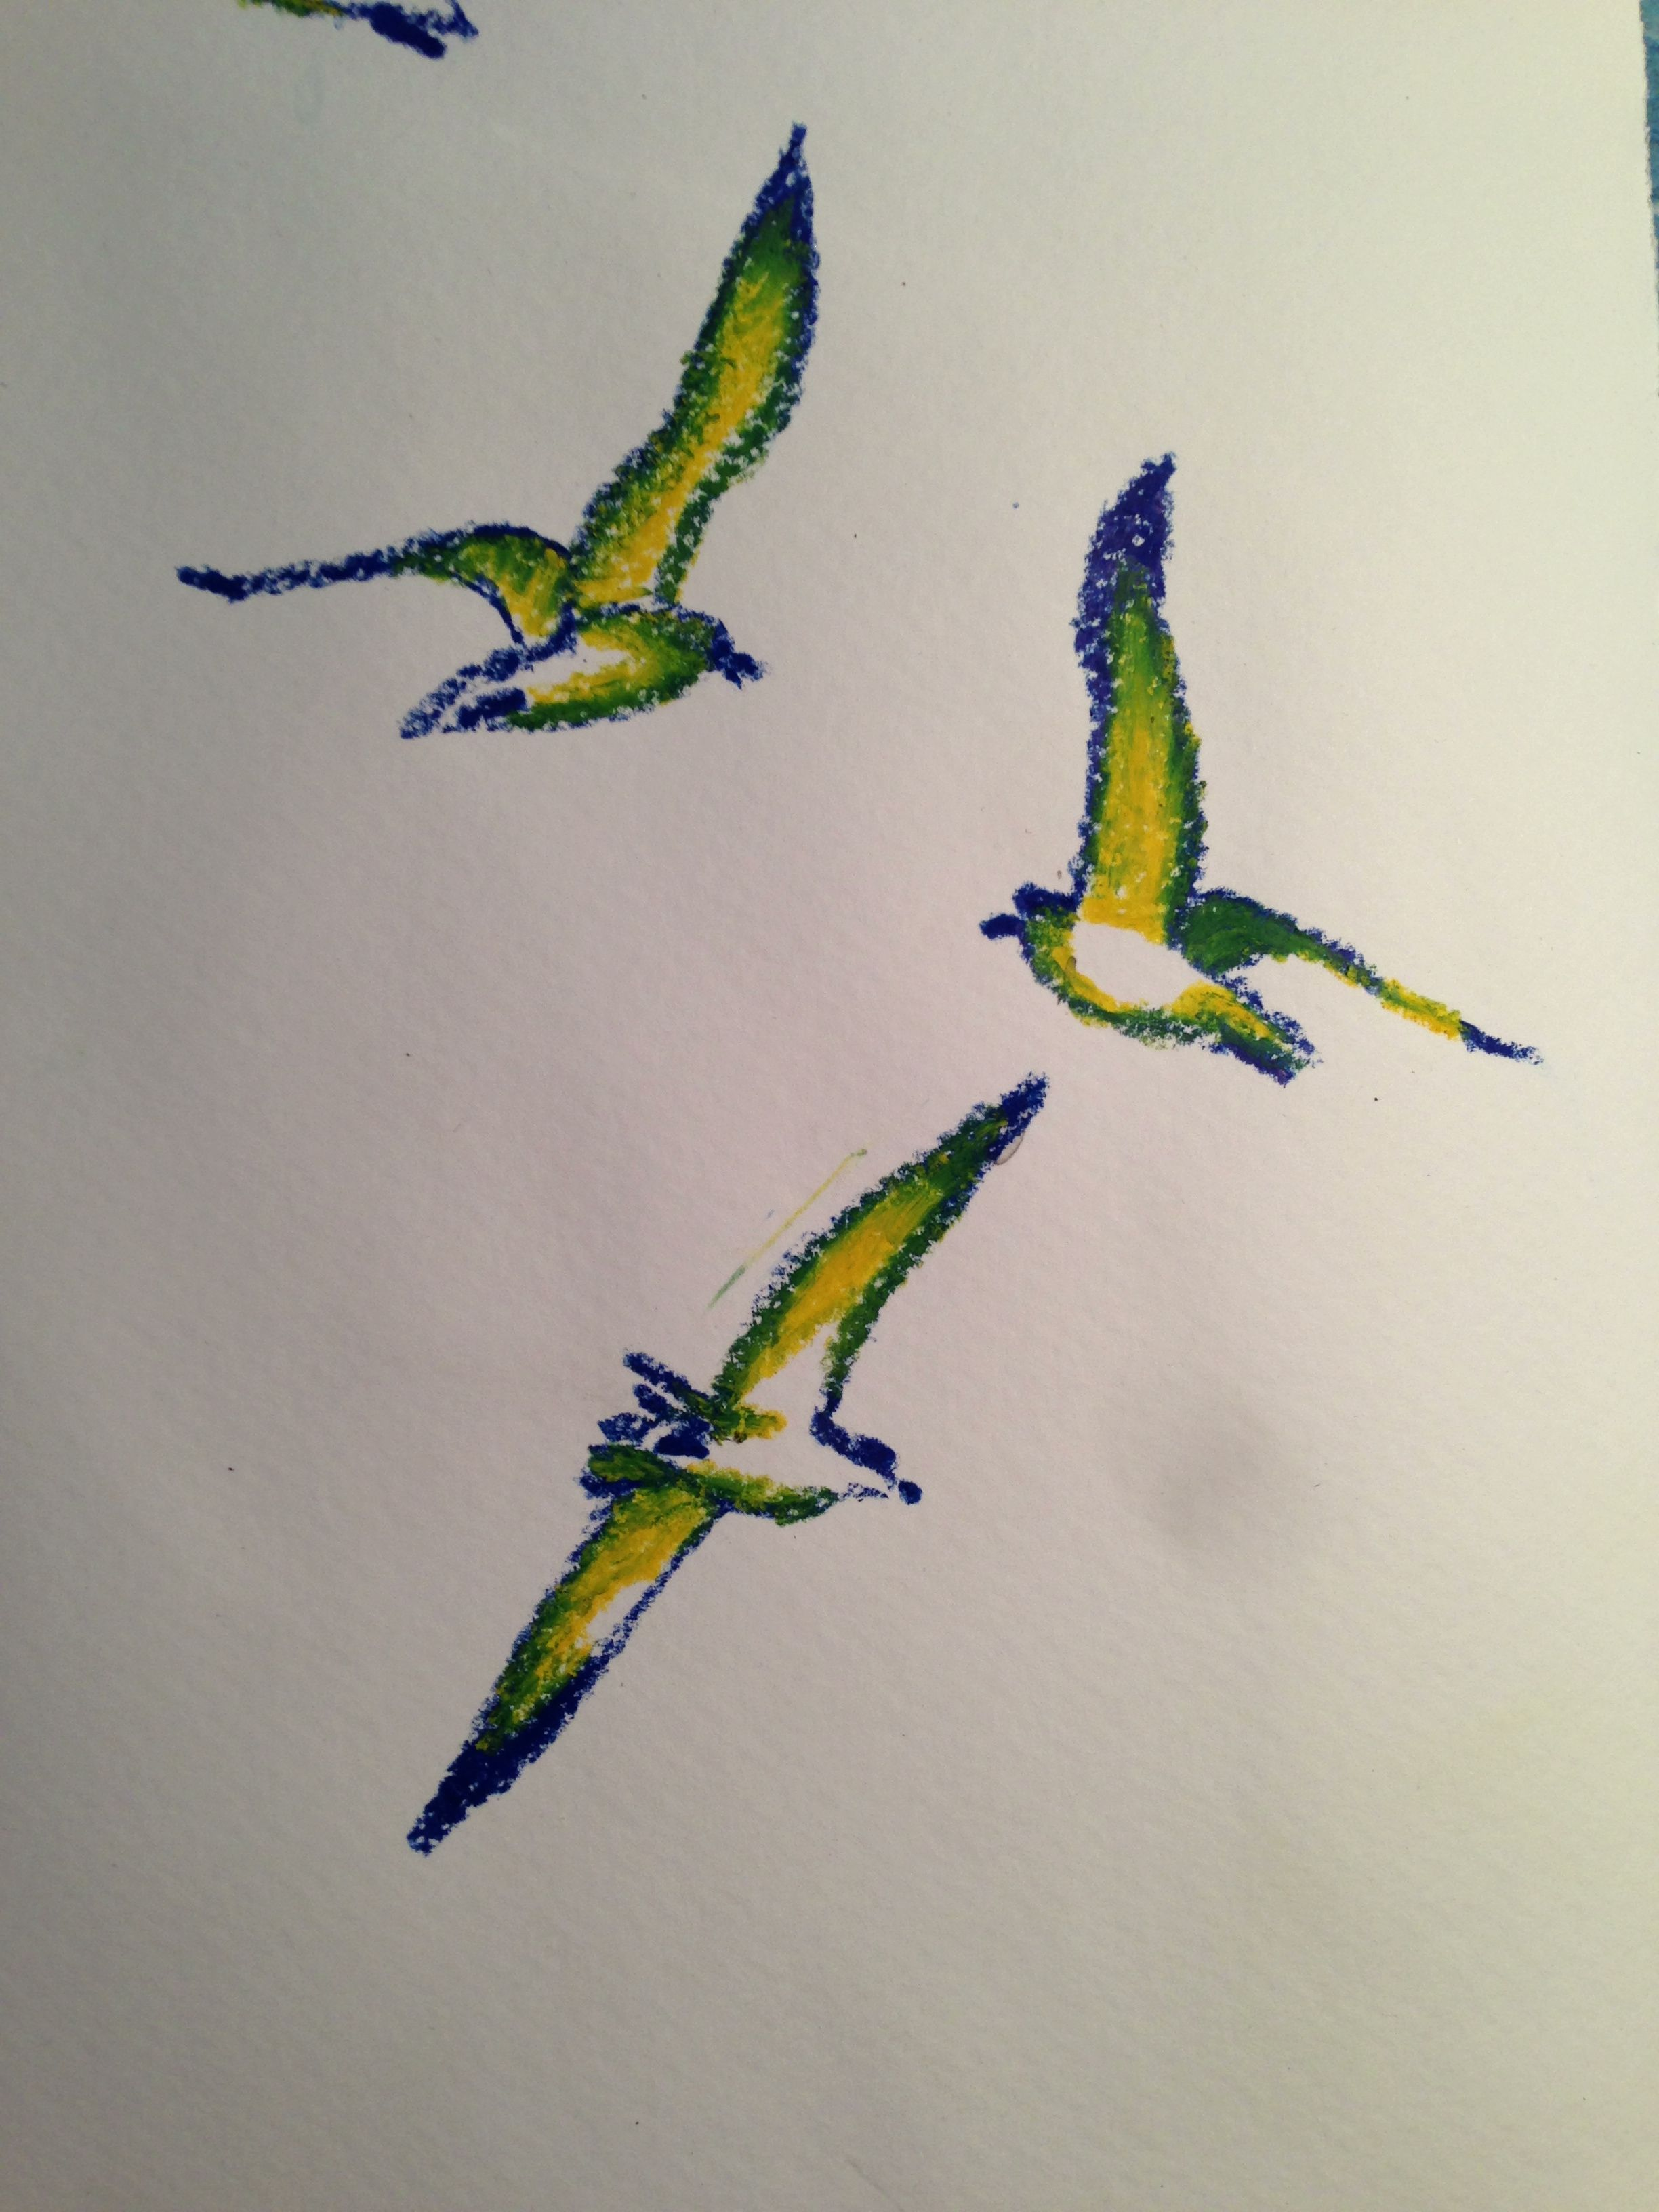 Seagulls drawin with yellow and blue crayon pencils, mixed on the page to add green.